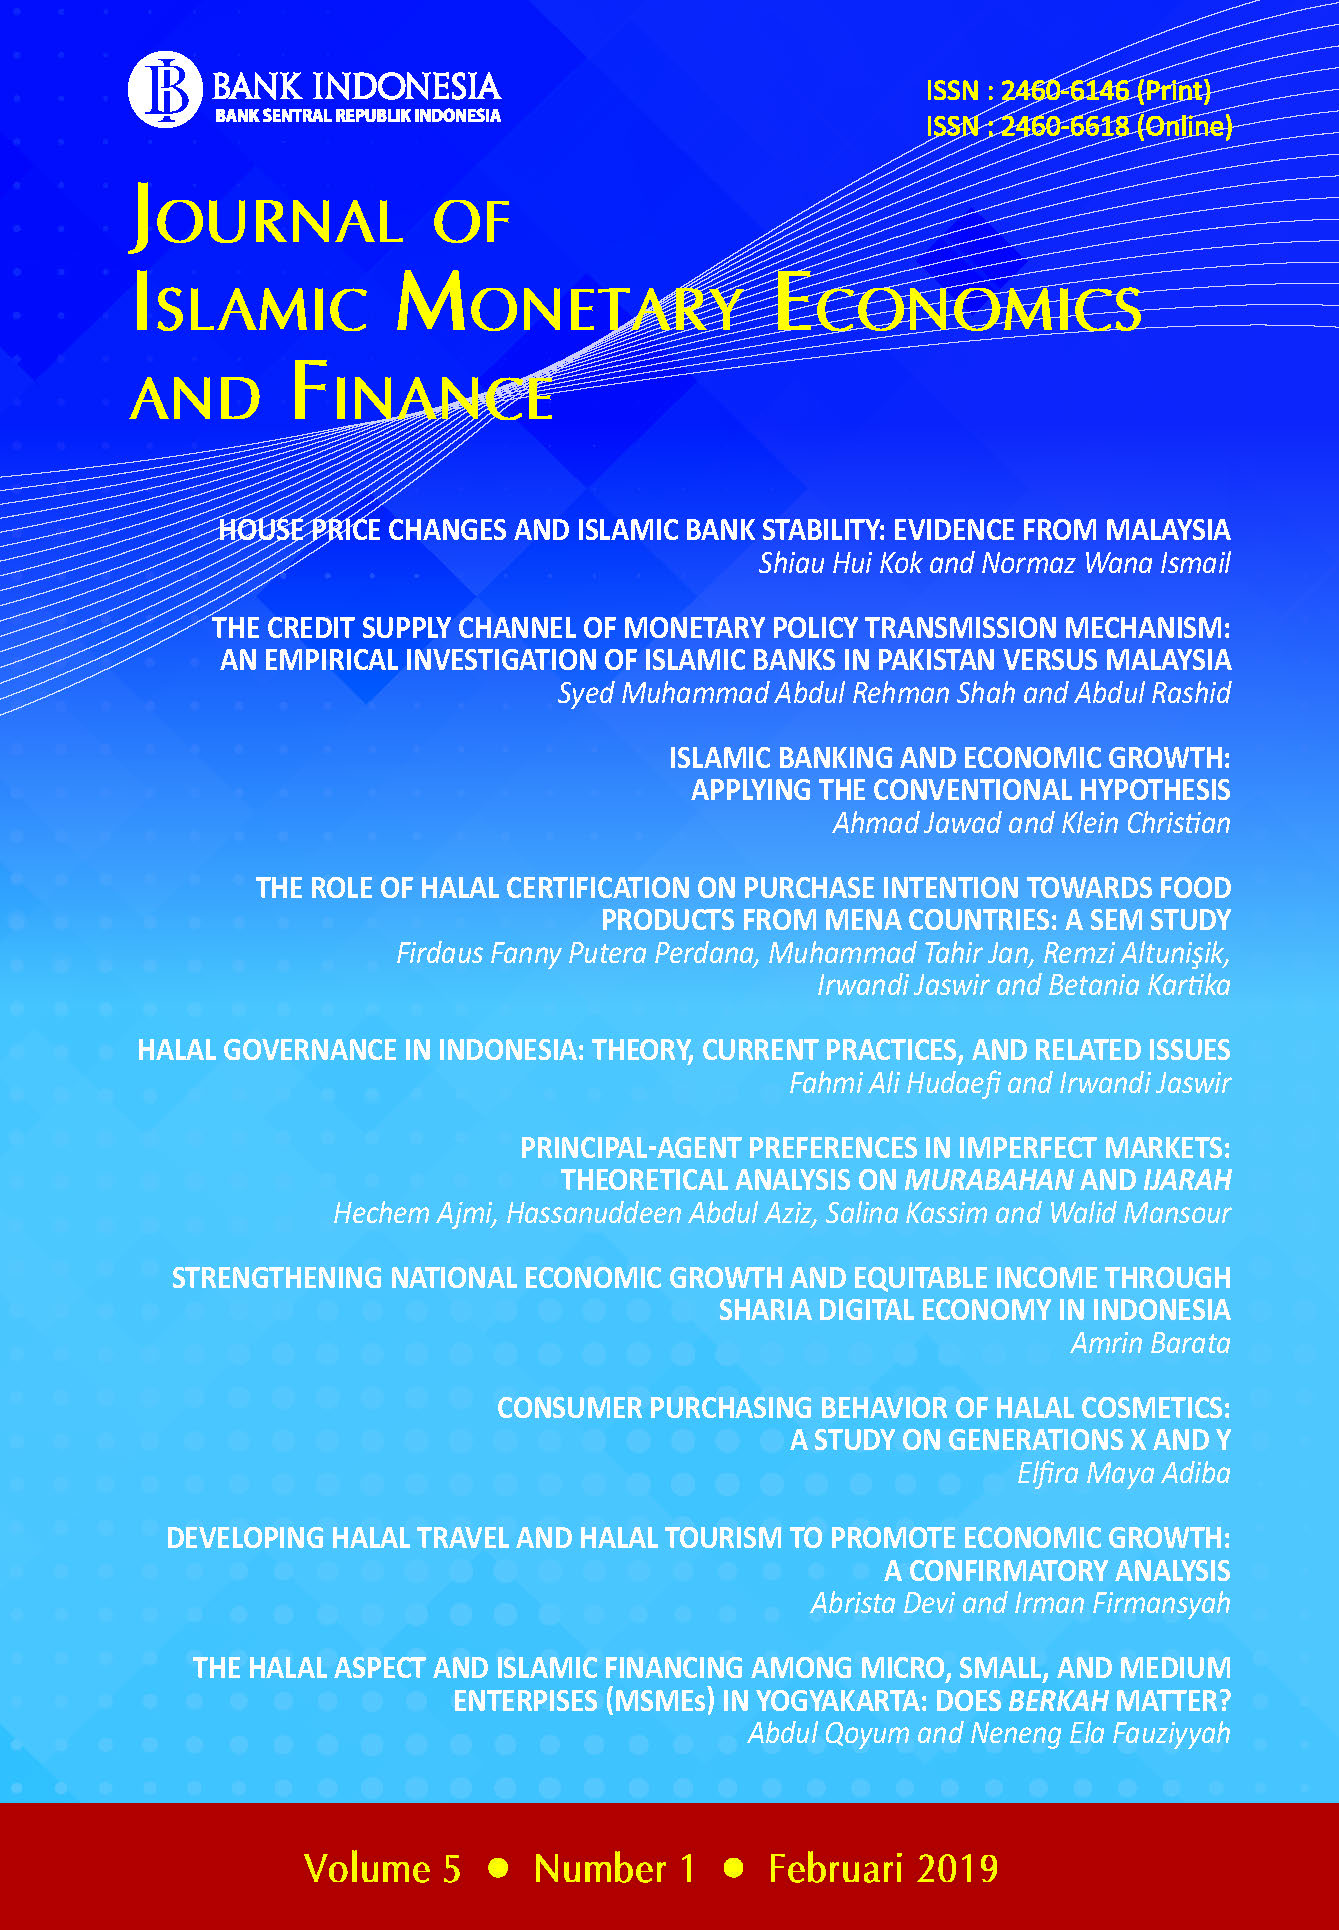 Vol 5 No 1 (2019) | Journal of Islamic Monetary Economics